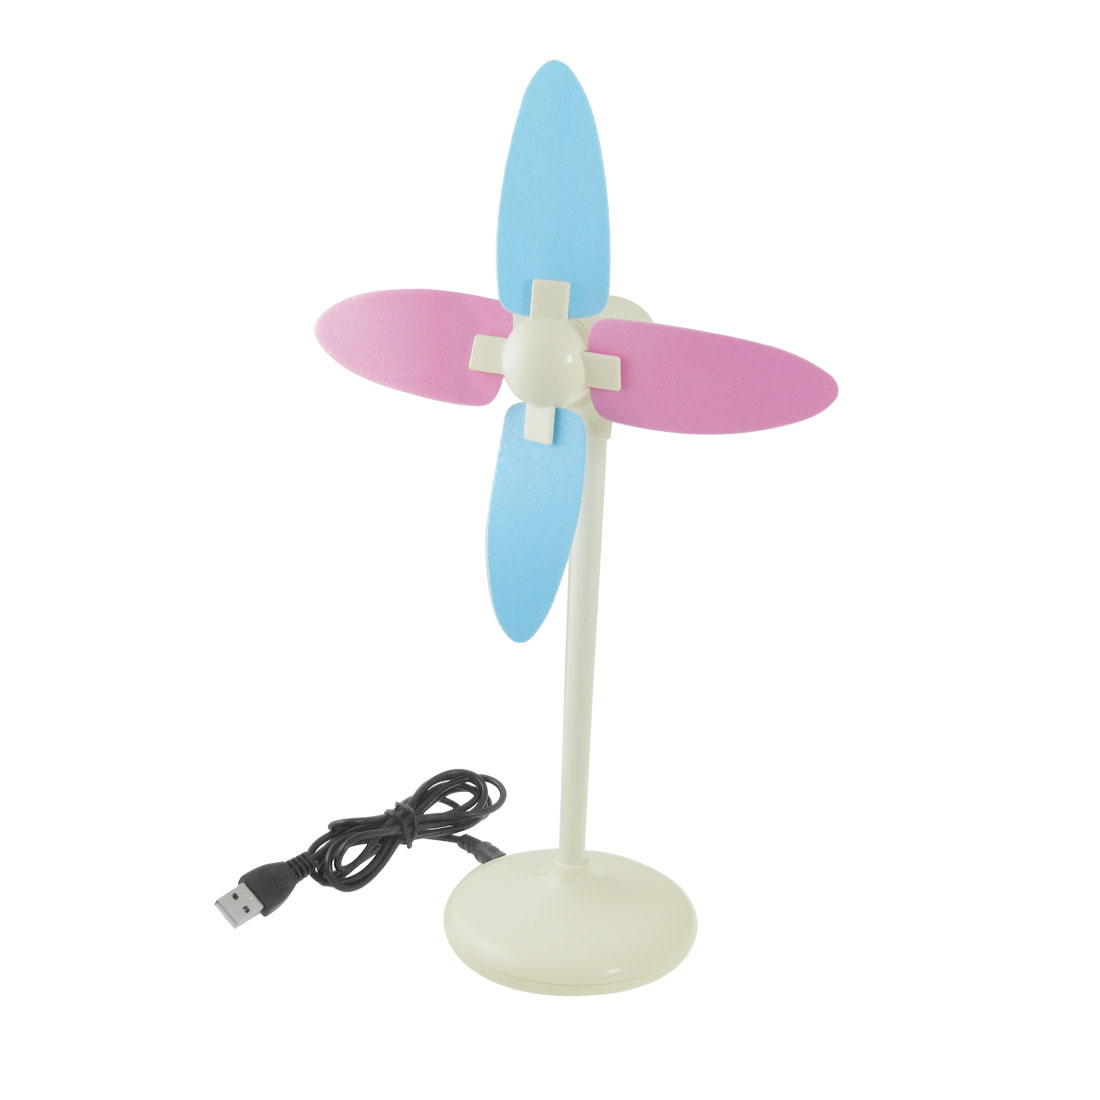 USB Batteries Powered DIY Assembly Foam Paddle Fan White